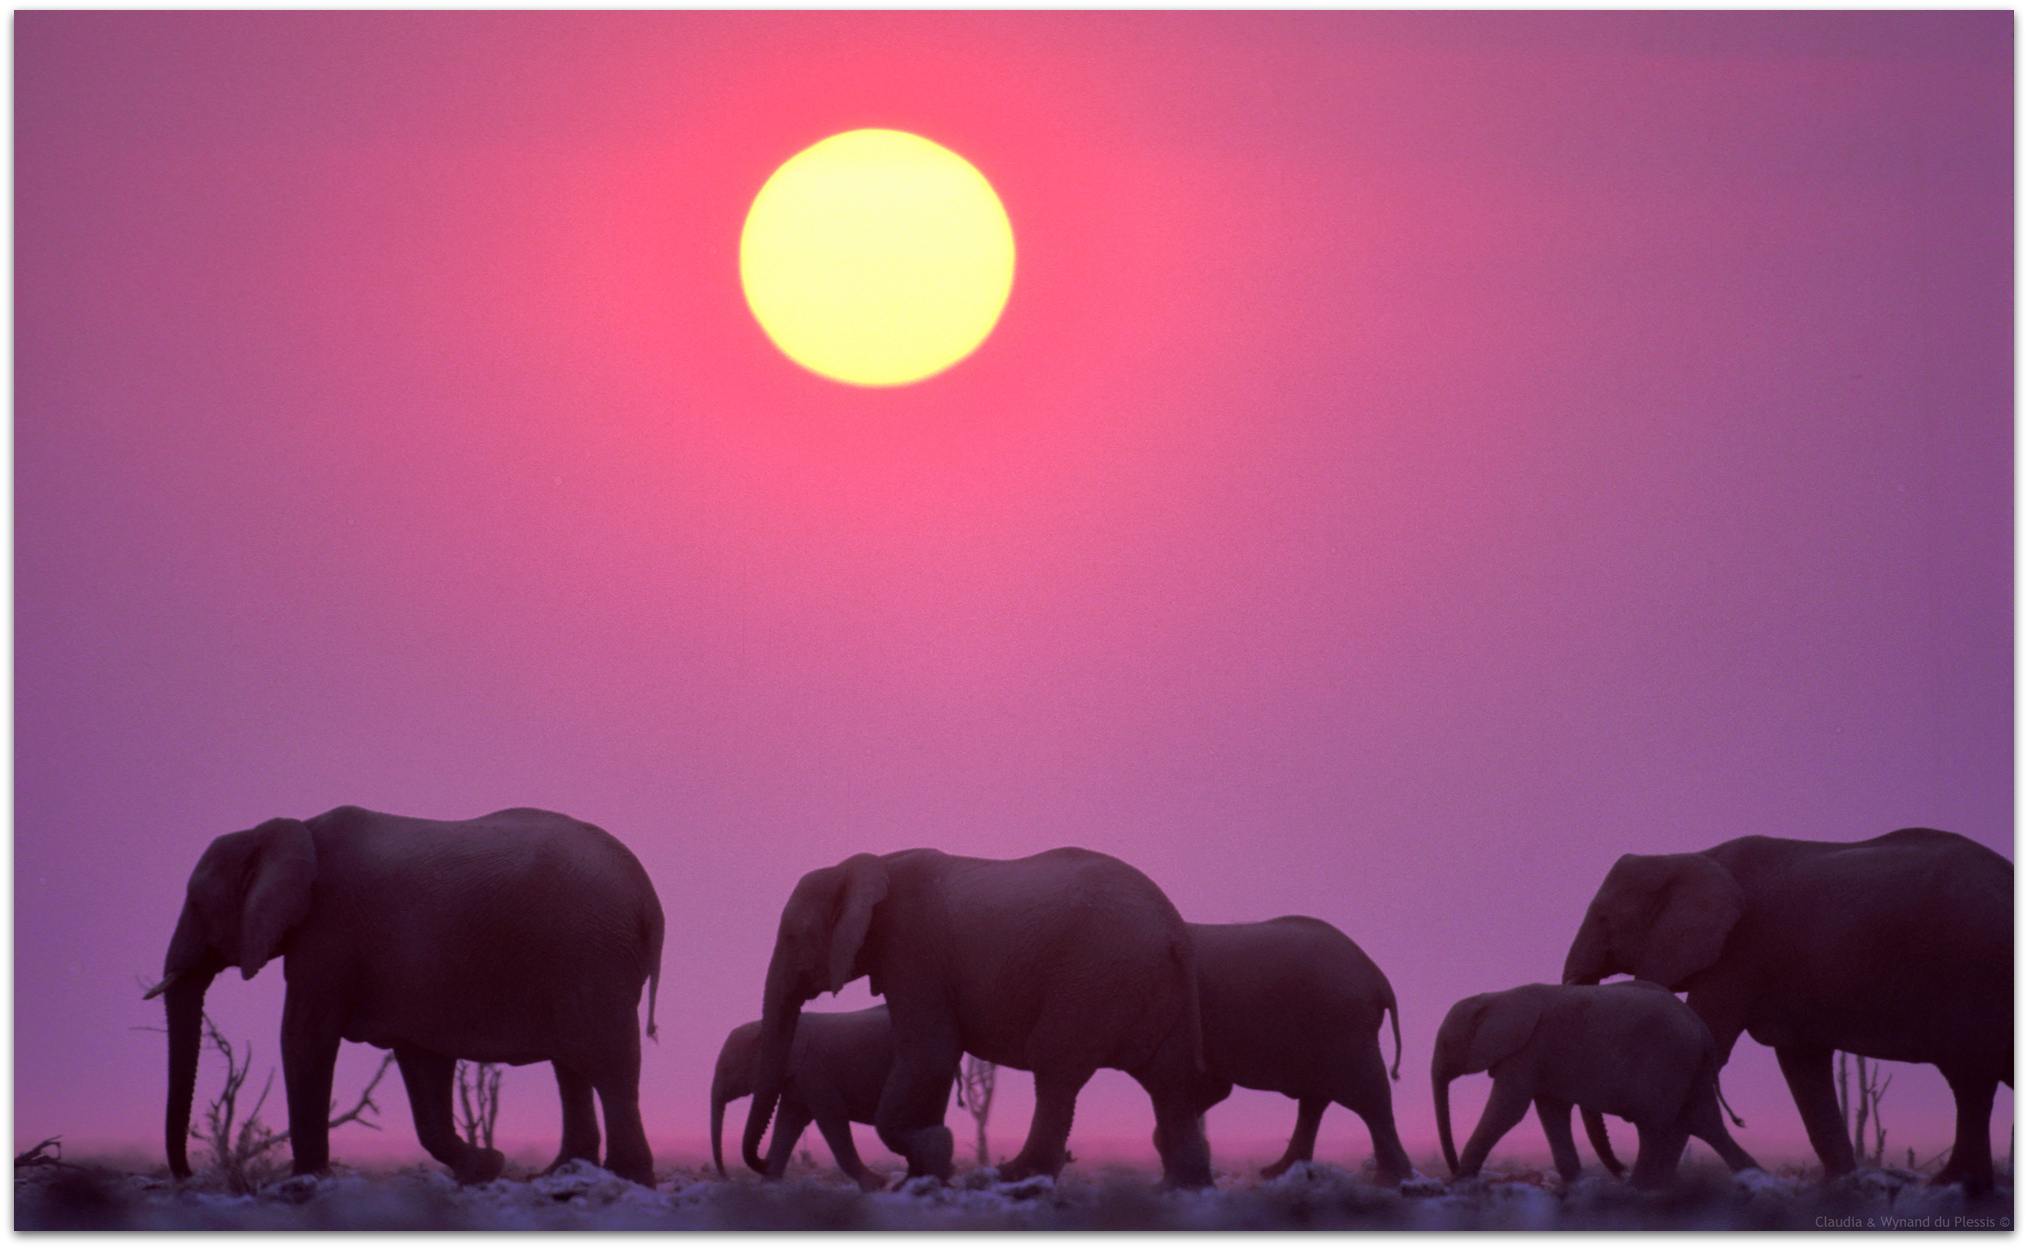 elephant herd passes in front of a pink sunset sky in Etosha National Park